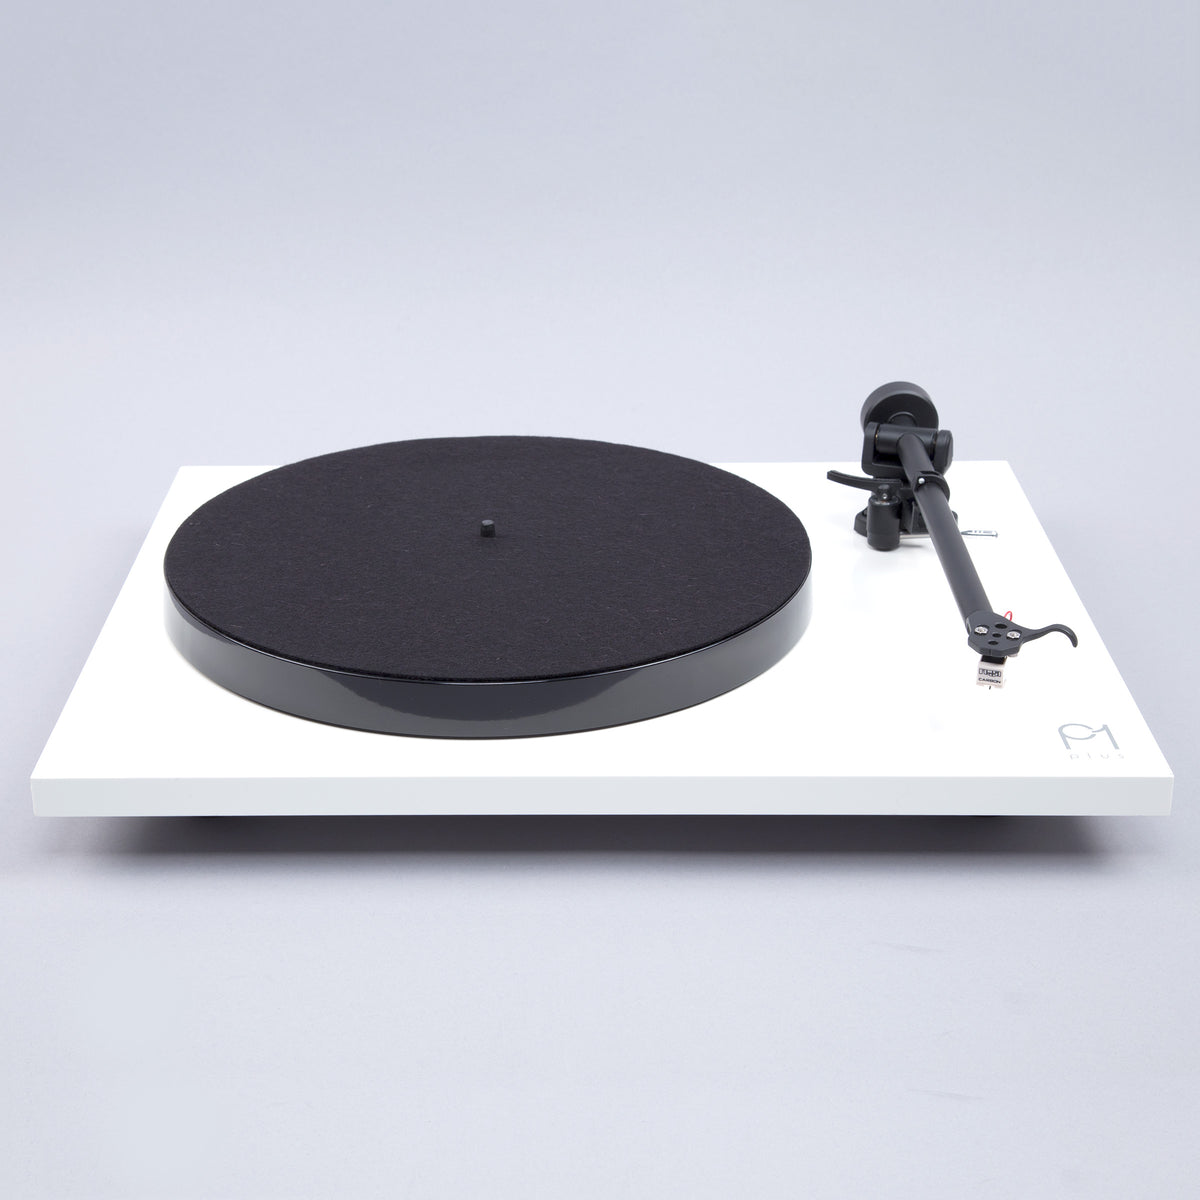 Rega: Planar 1 Plus Turntable w/ Built-In Phono Preamp - White